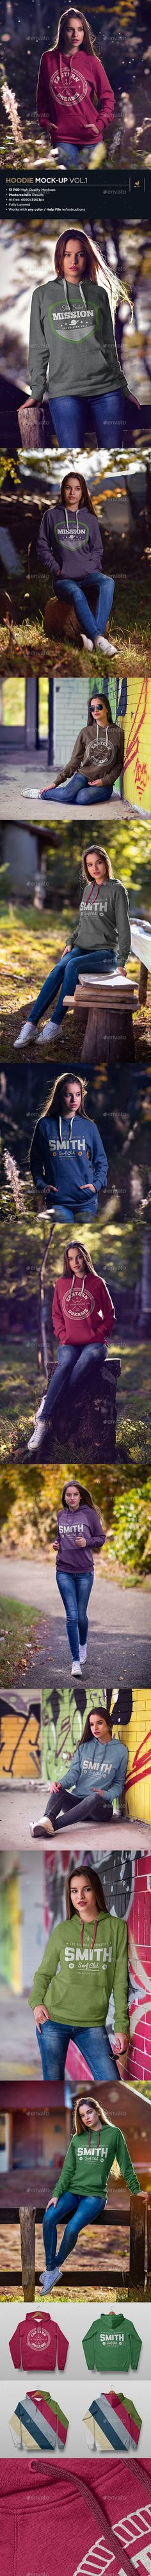 Hoodie MockUp Vol.1 — Photoshop PSD #girl #female • Available here → https://graphicriver.net/item/hoodie-mockup-vol1/18393956?ref=pxcr